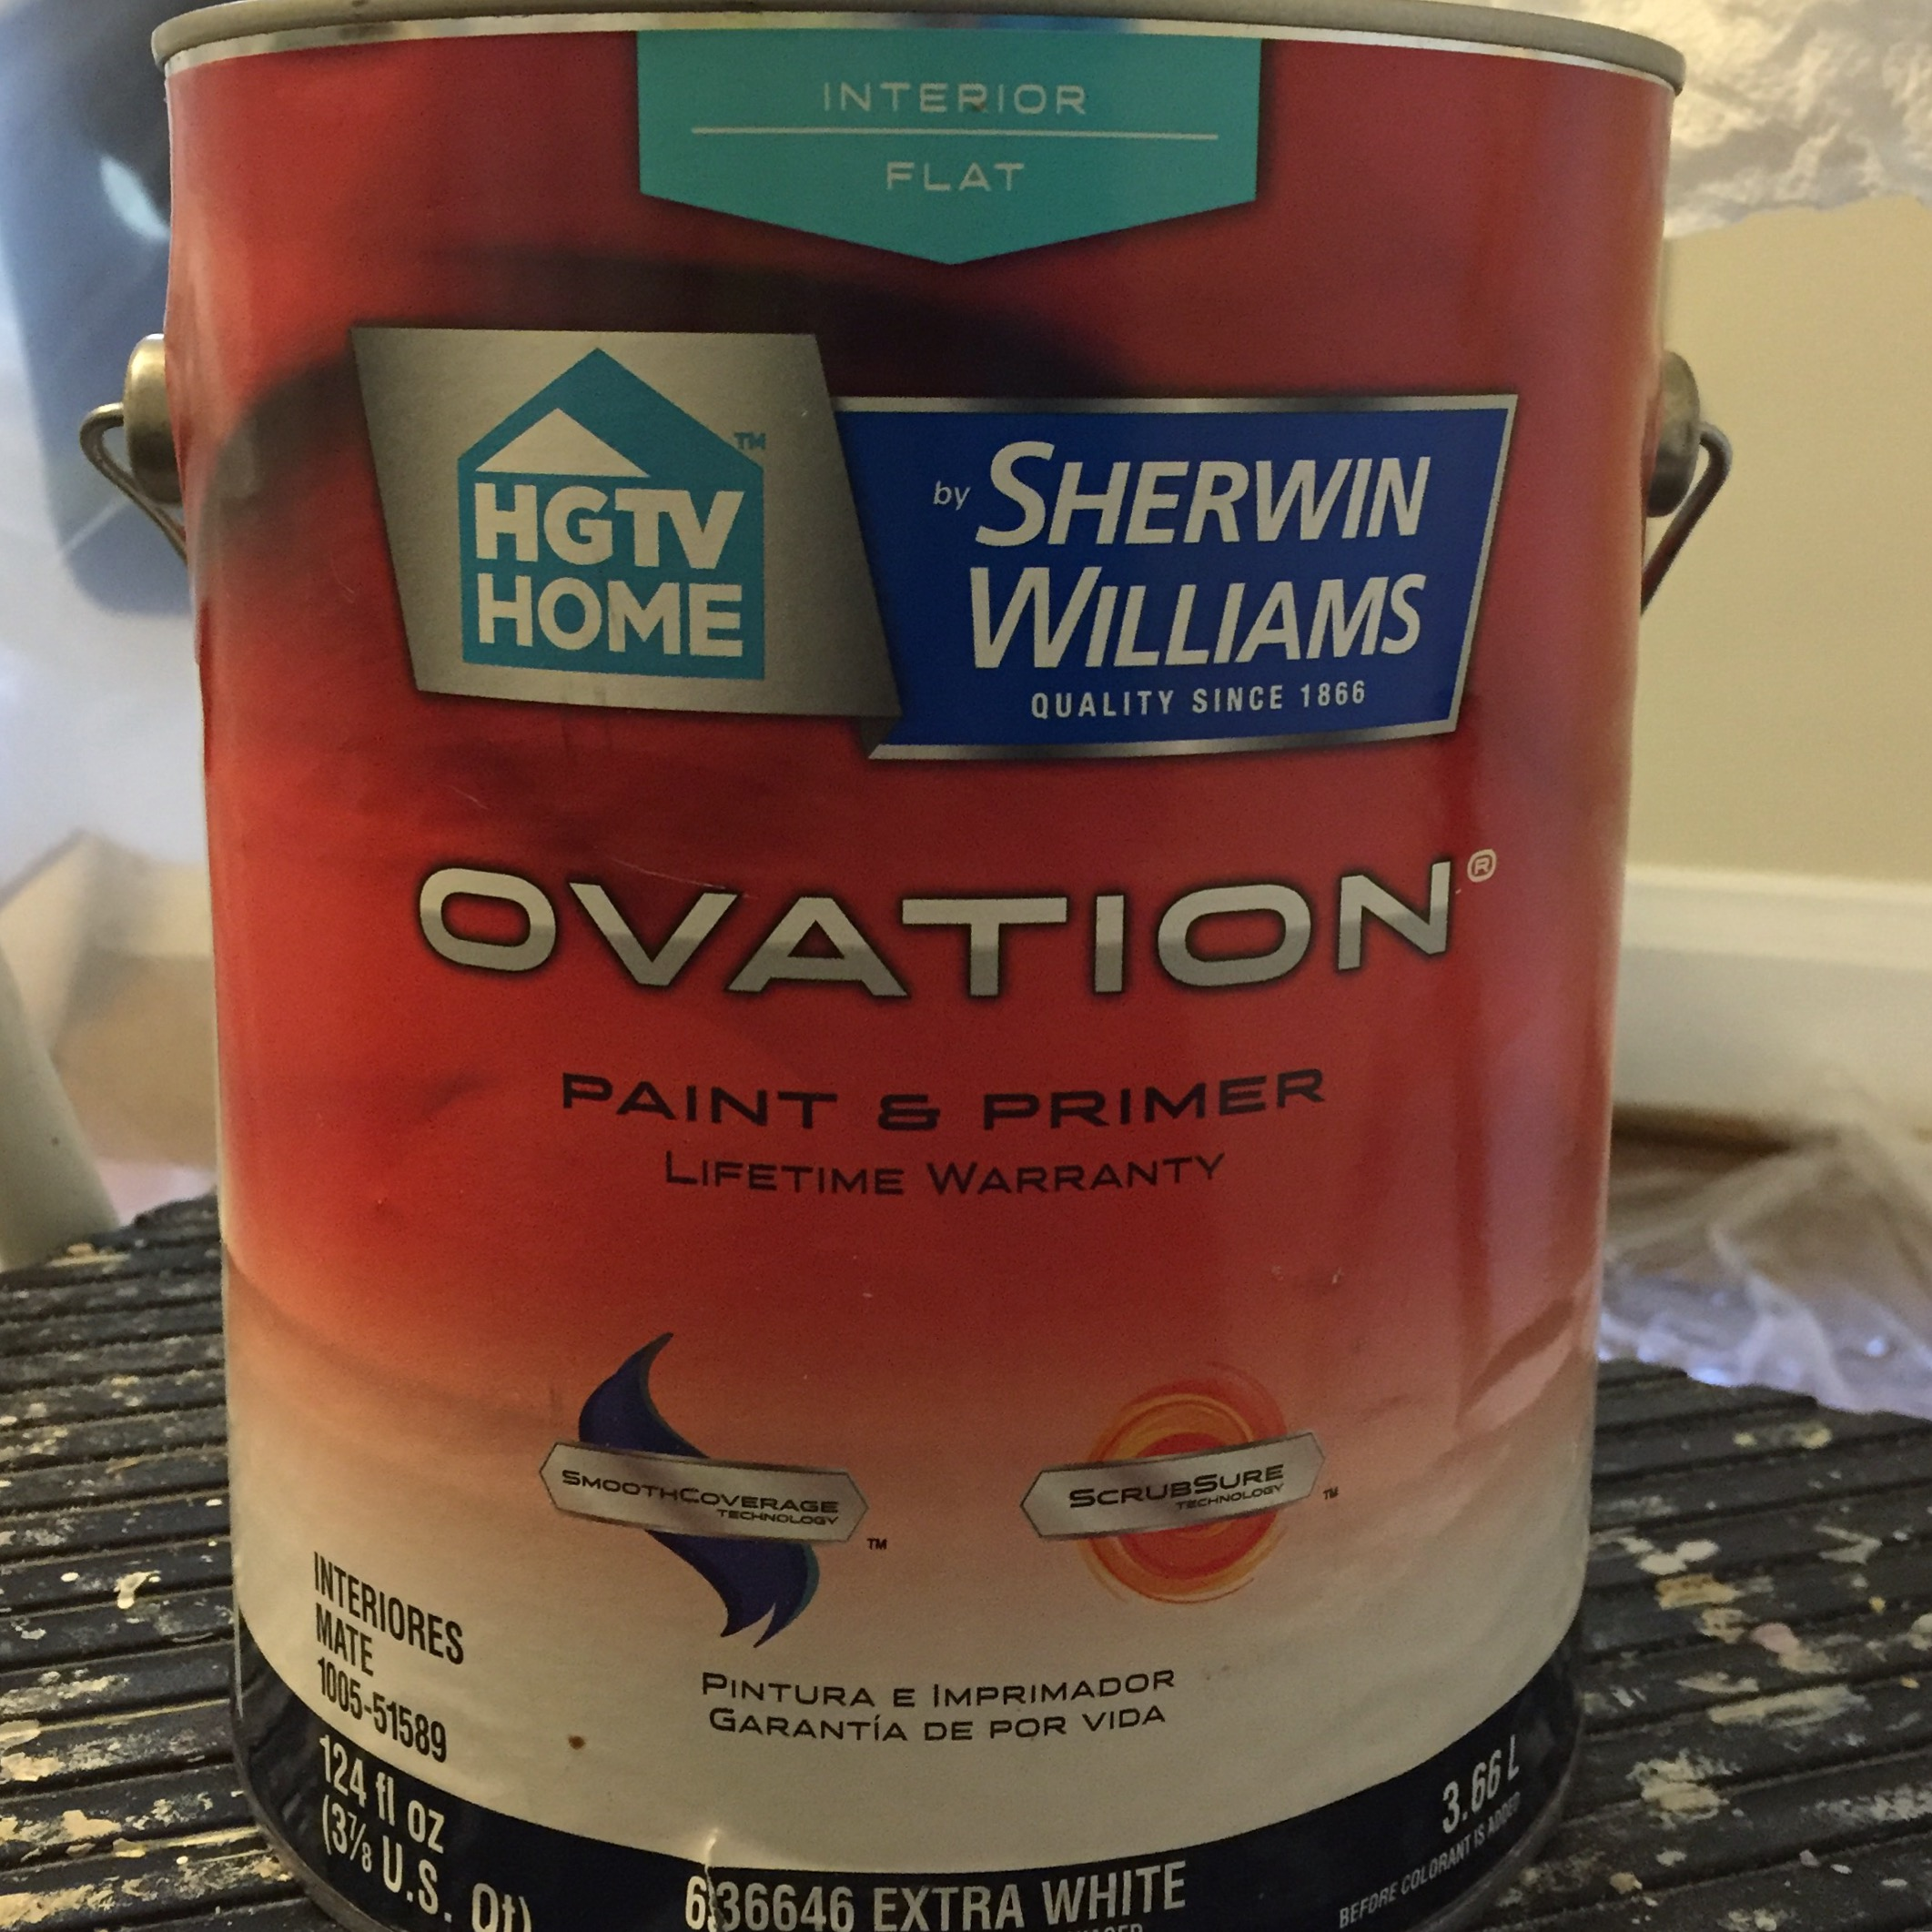 HGTV Home by Sherwin Williams Ovation paint in Cooled Blue - thediybungalow.com